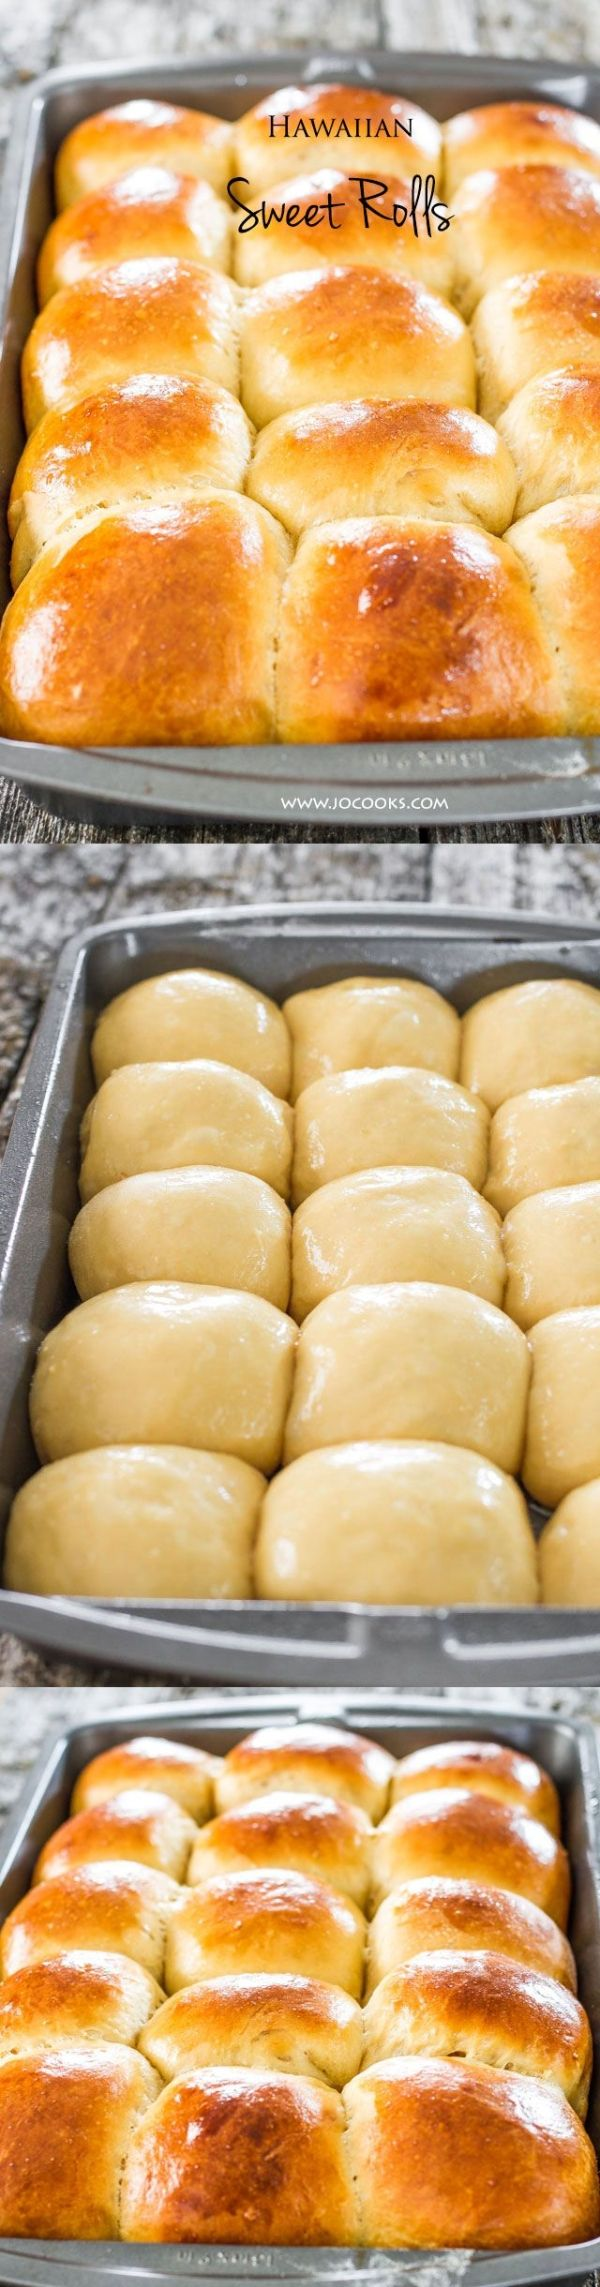 Hawaiian sweet rolls by kristie